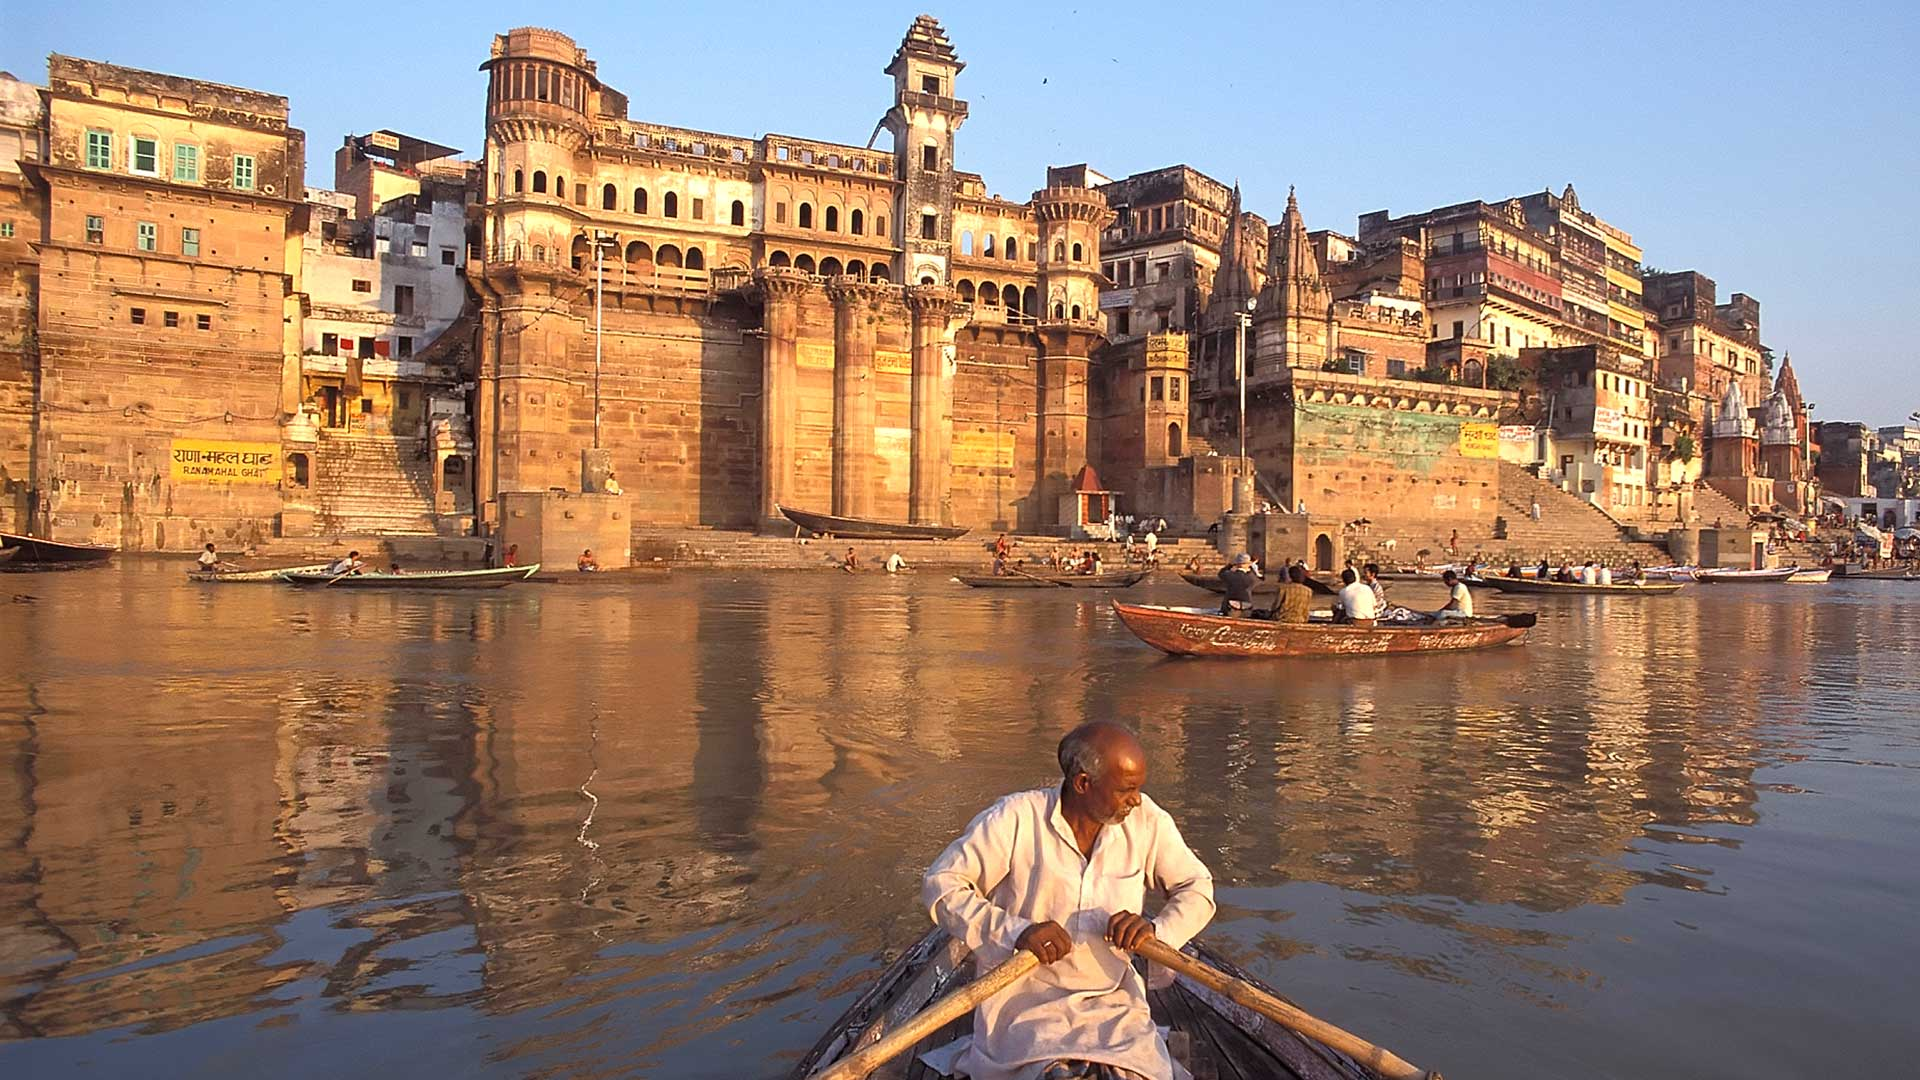 Man rowing a boat in front of the Bhij Rama Palace in Varanasi, India with GeoEx